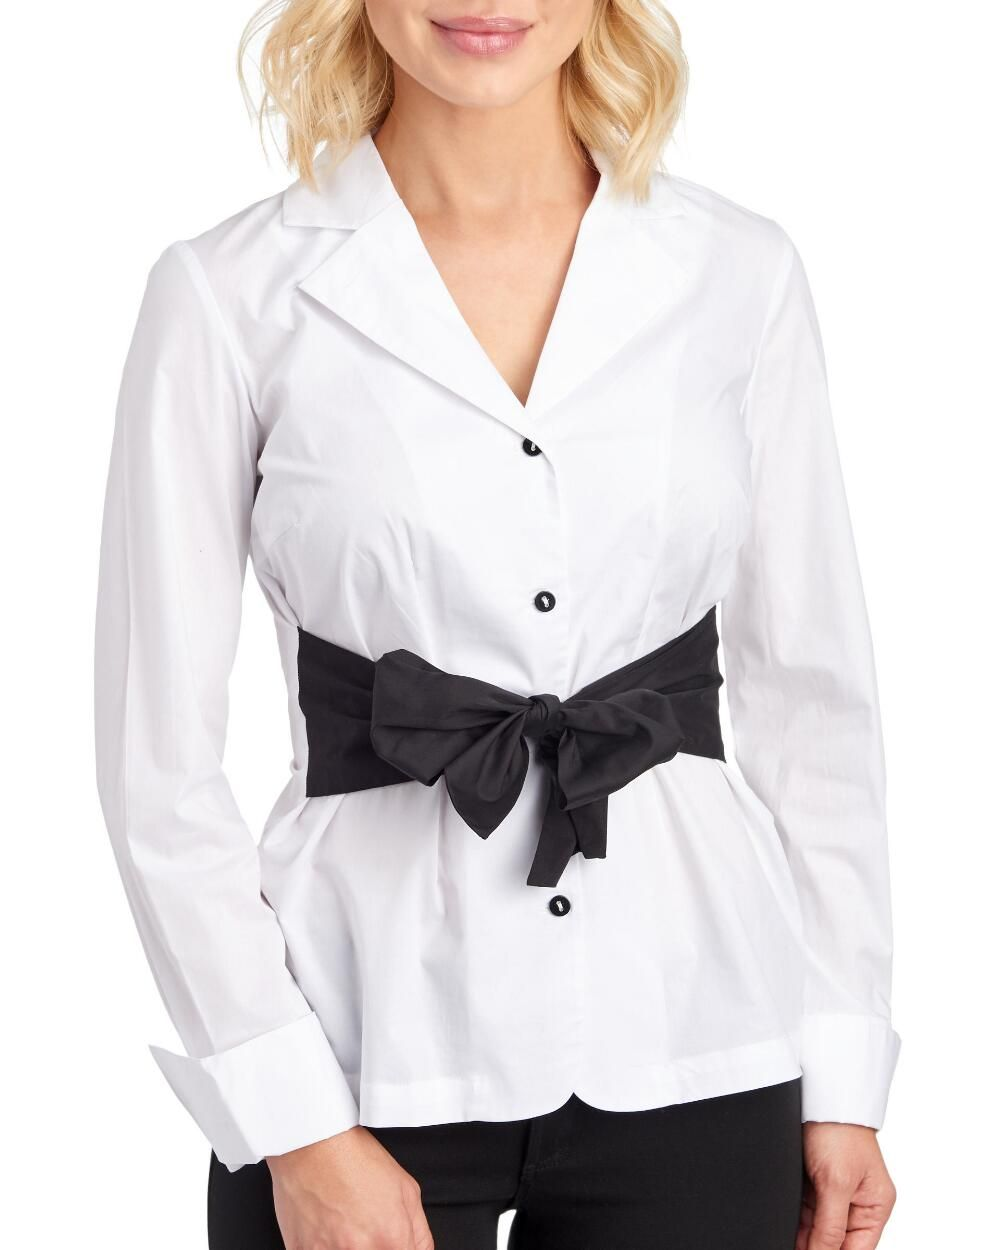 Notched Collar Tie Front Top Stein Mart Front Tie Top Fashion Clothes [ 1250 x 1000 Pixel ]